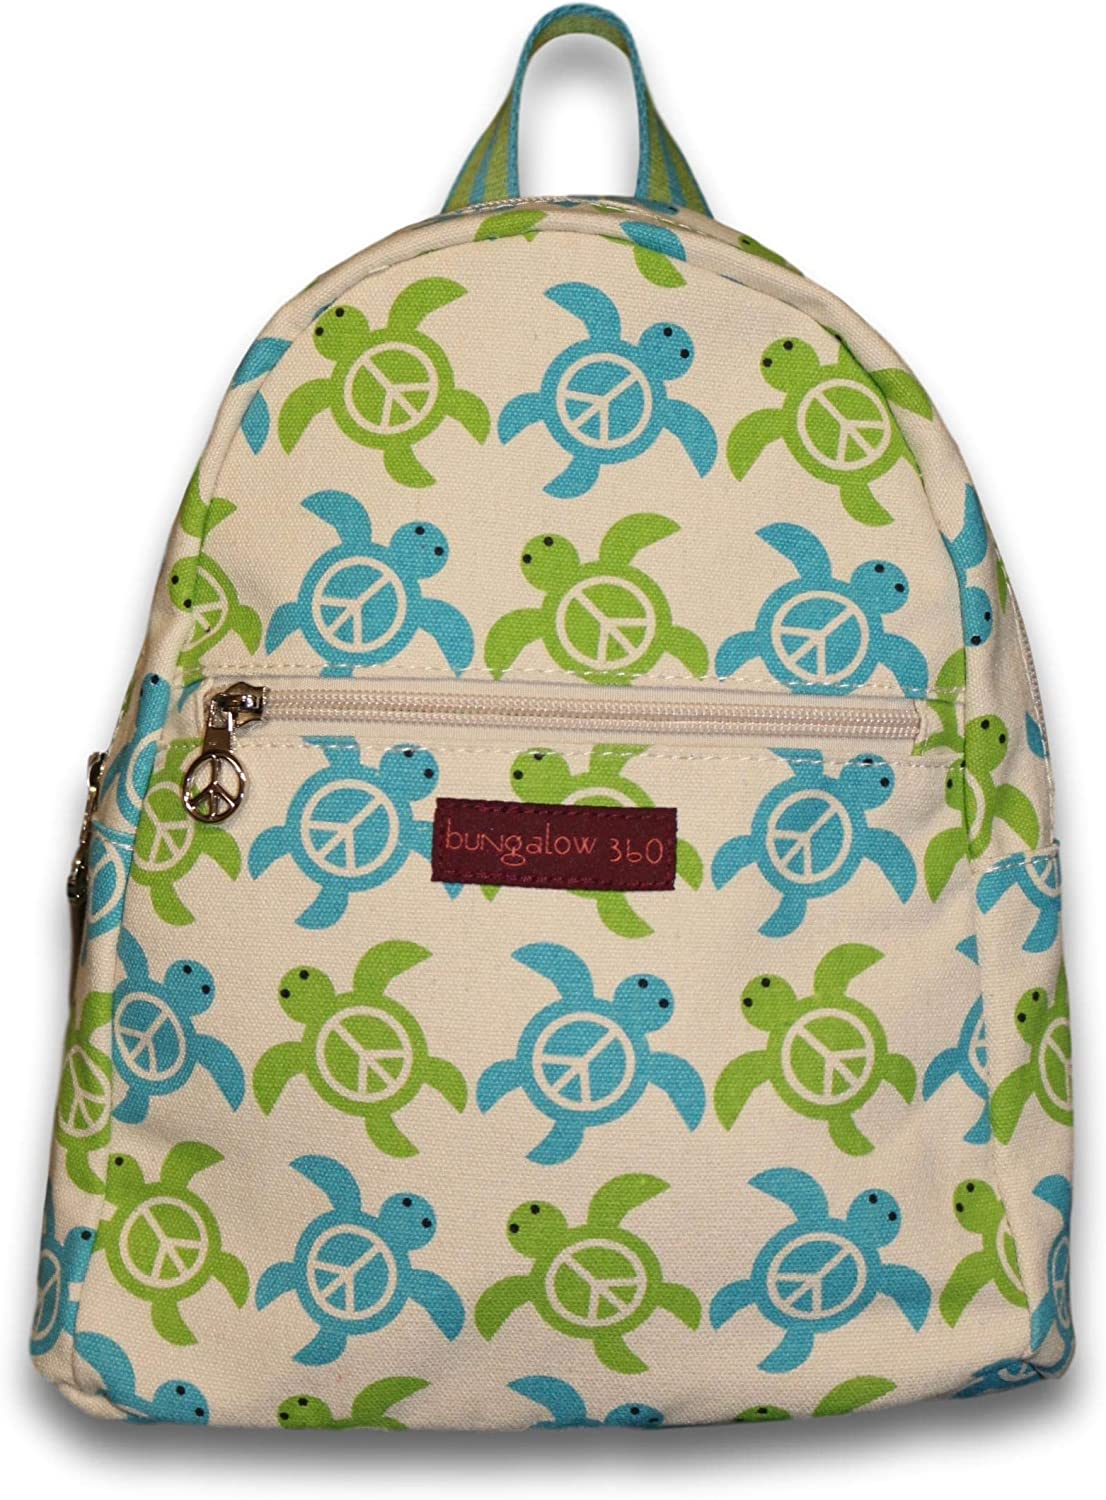 Bungalow 360 Adult Mini Backpack